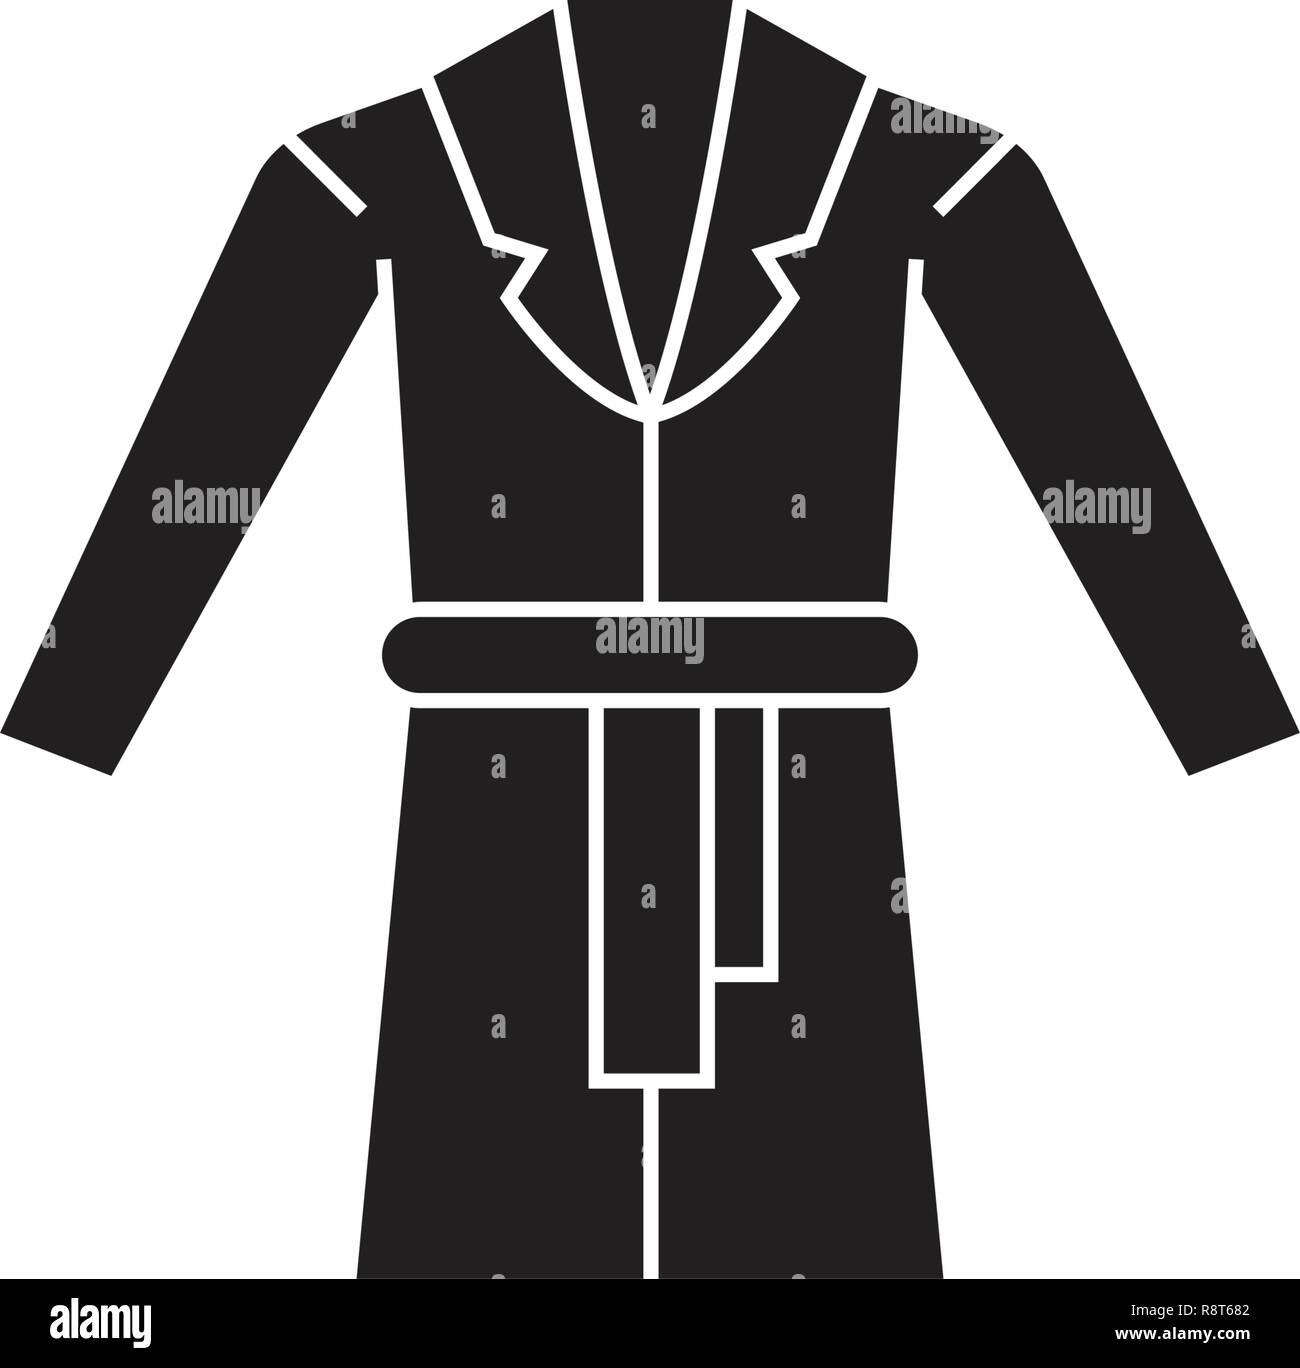 Dressing gown black vector concept icon. Dressing gown flat illustration, sign - Stock Vector